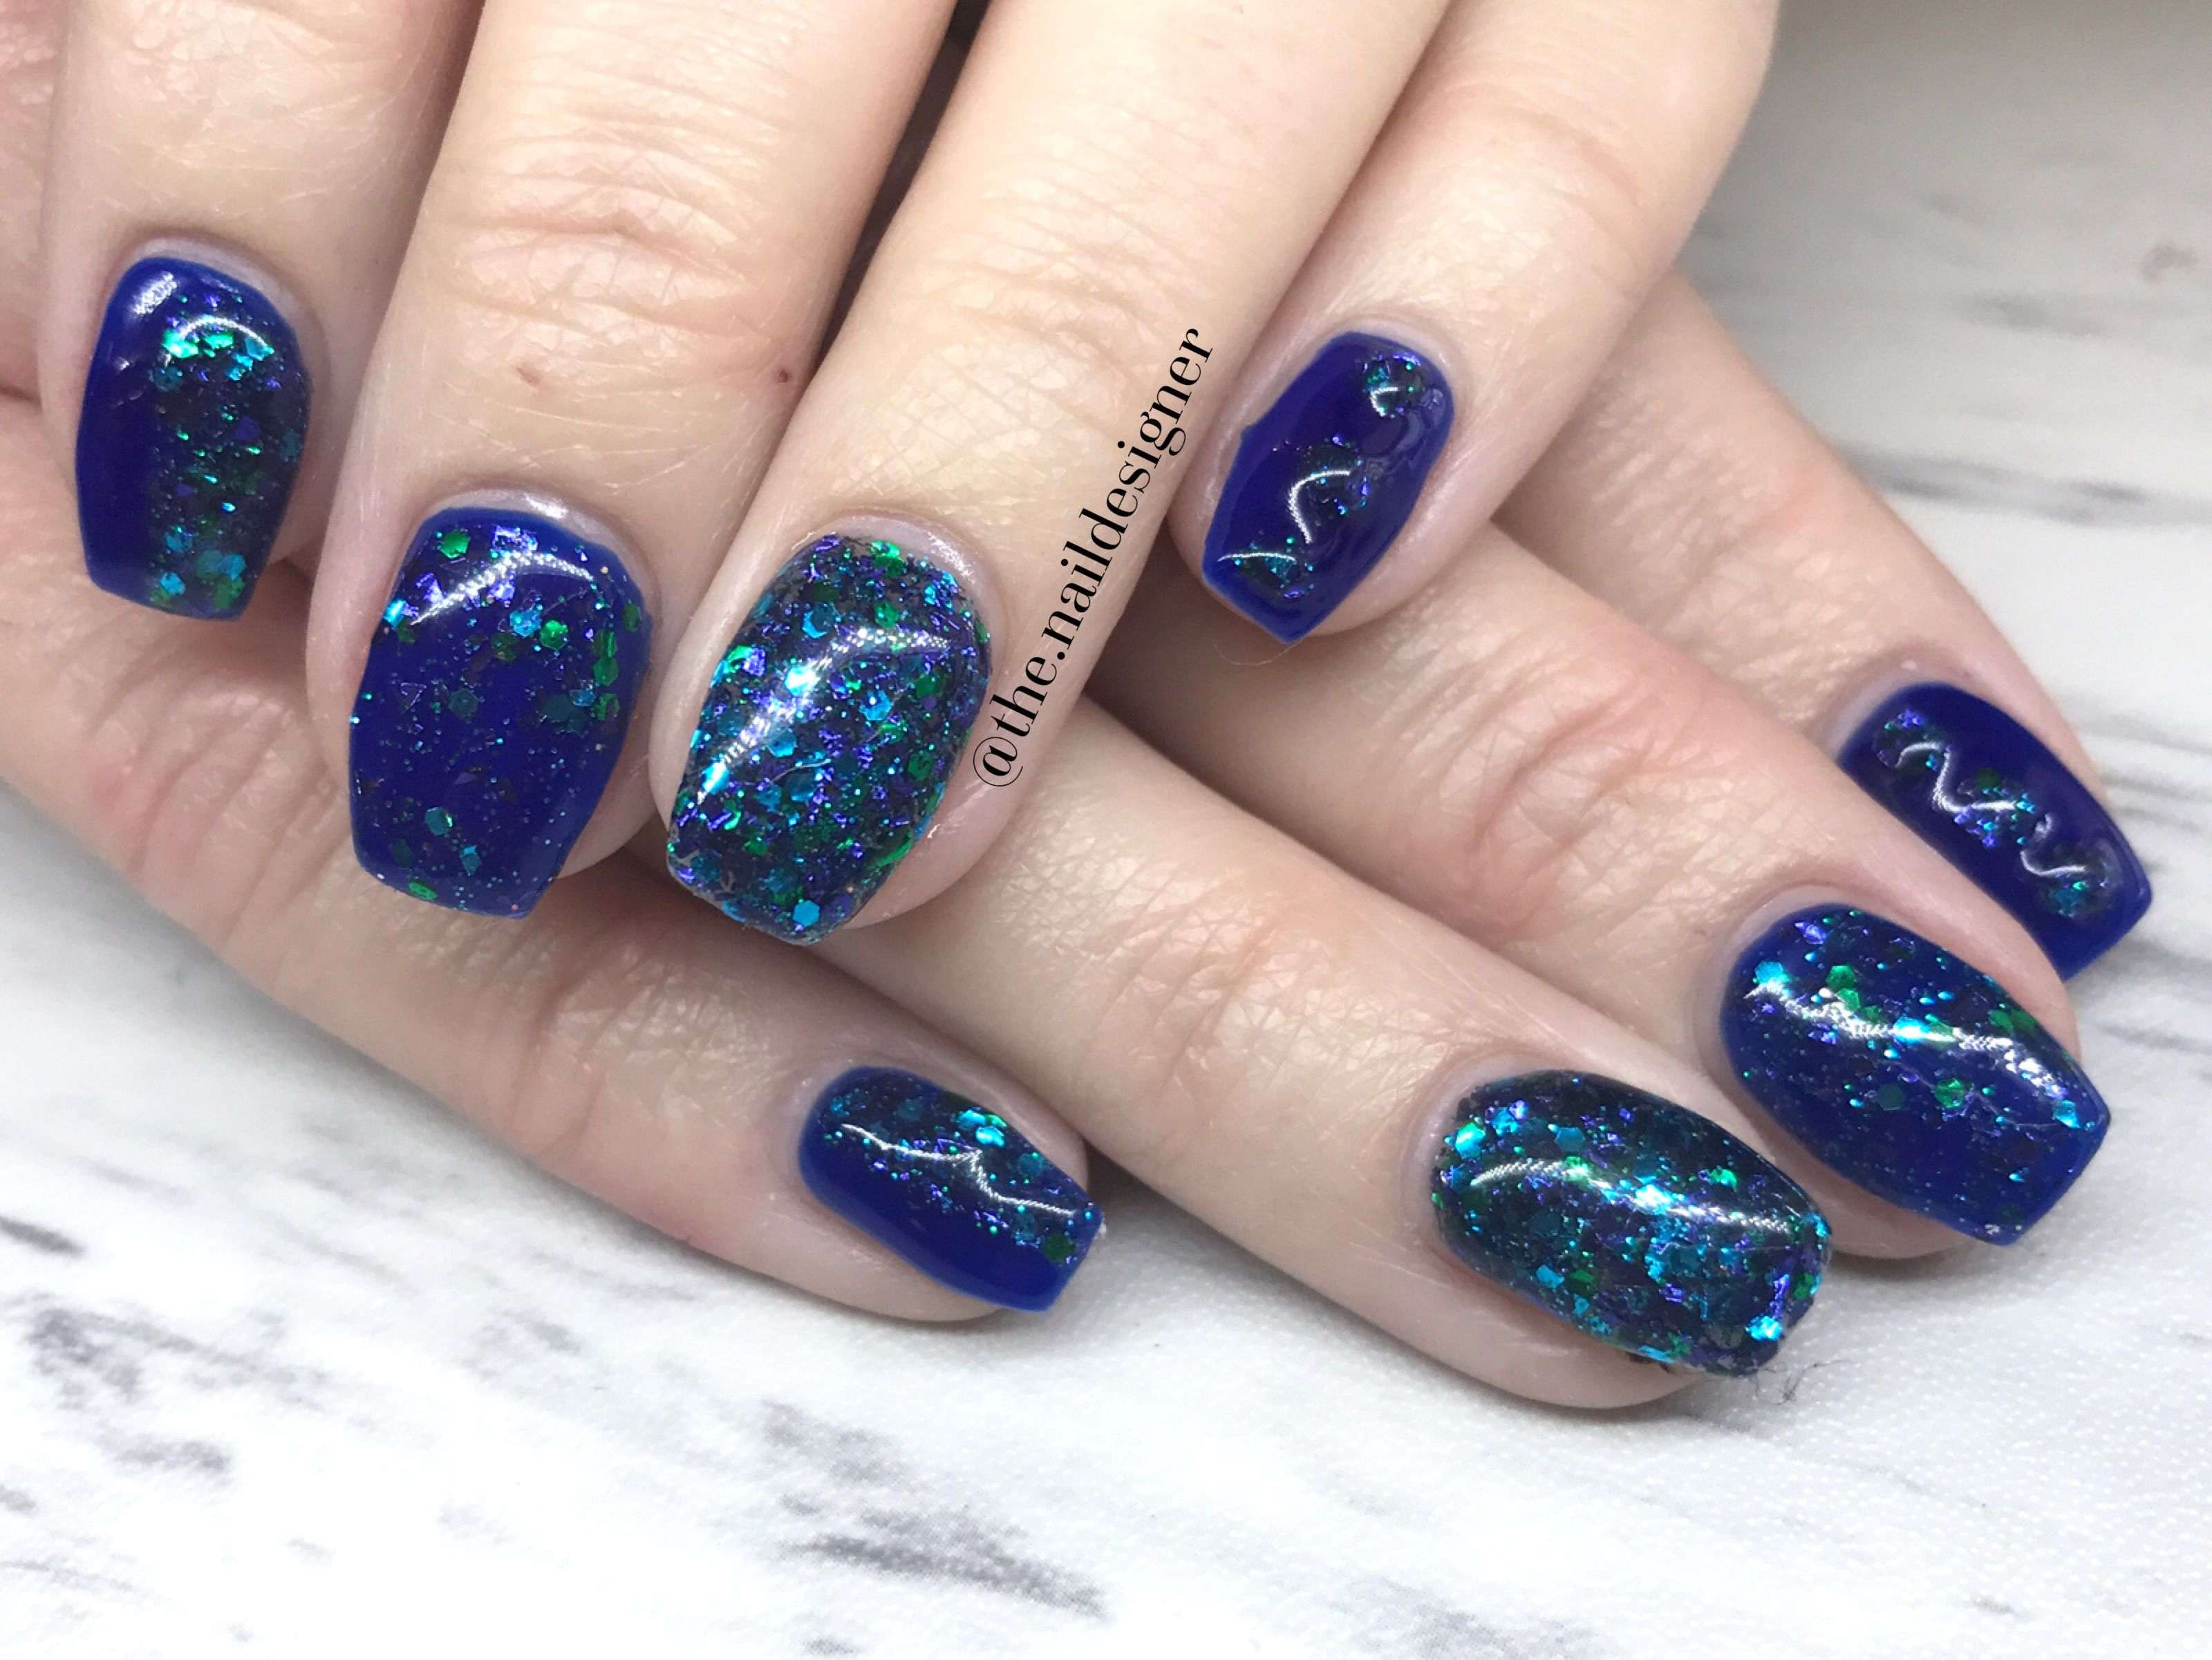 Pin by caytie marie on the nail designer pinterest designers comment glitter nails designers instagram ps glitter accent nails glittery nails photo manipulation prinsesfo Image collections